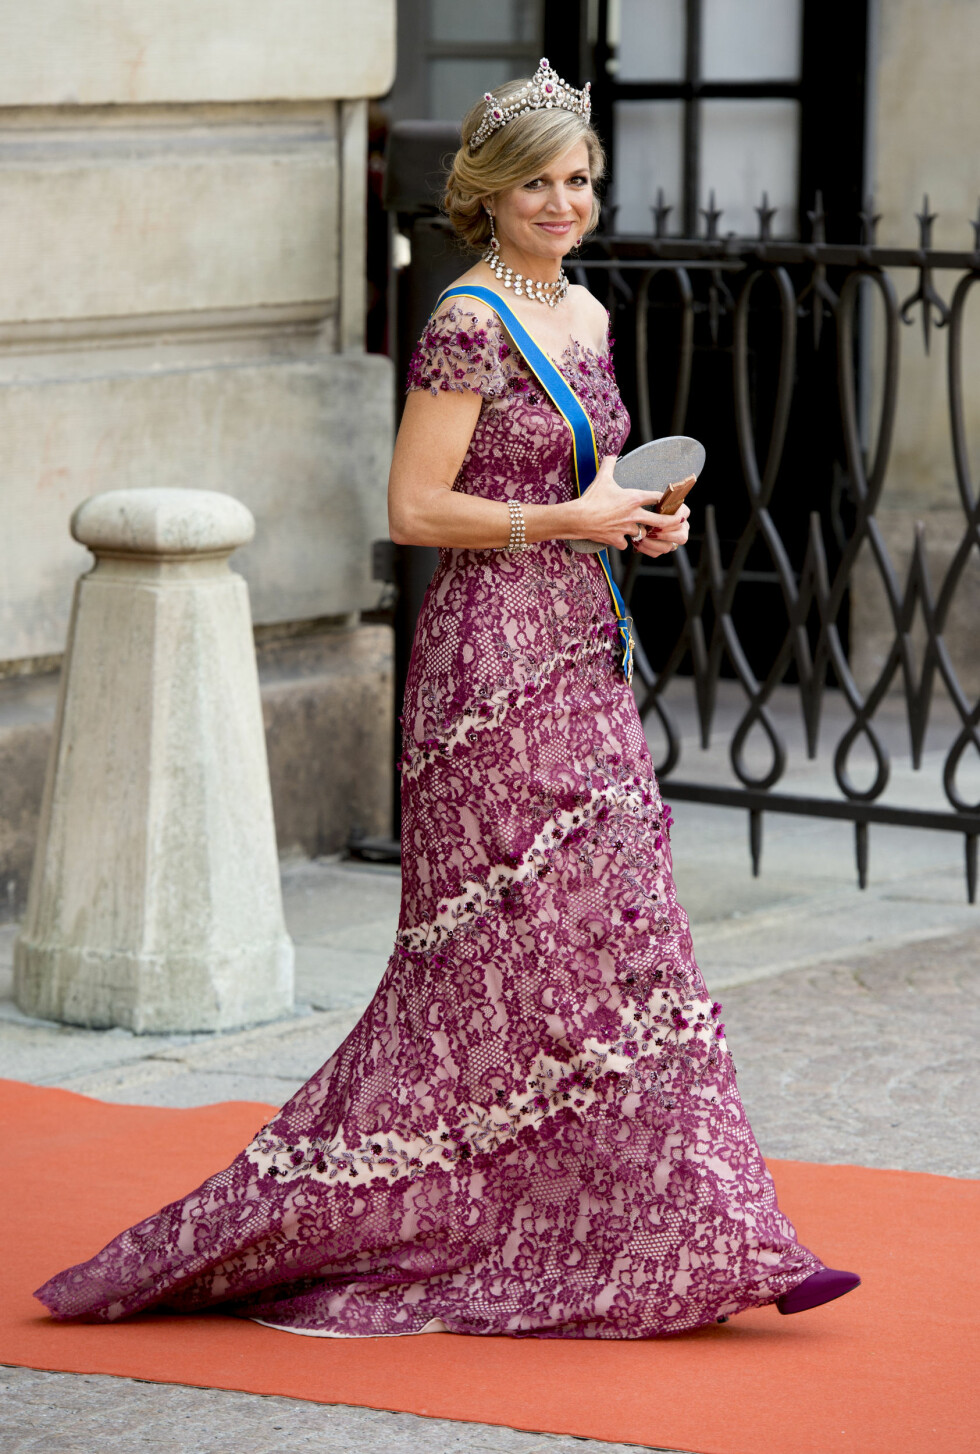 13-6-2015 STOCKHOLM Arrival of Queen Maxima from the Netherlands for The wedding of Prince Carl Philip and Sofia Hellqvist at the Royal palace in Stockholm .COPYRIGHT ROBIN UTRECHT Foto: Abaca